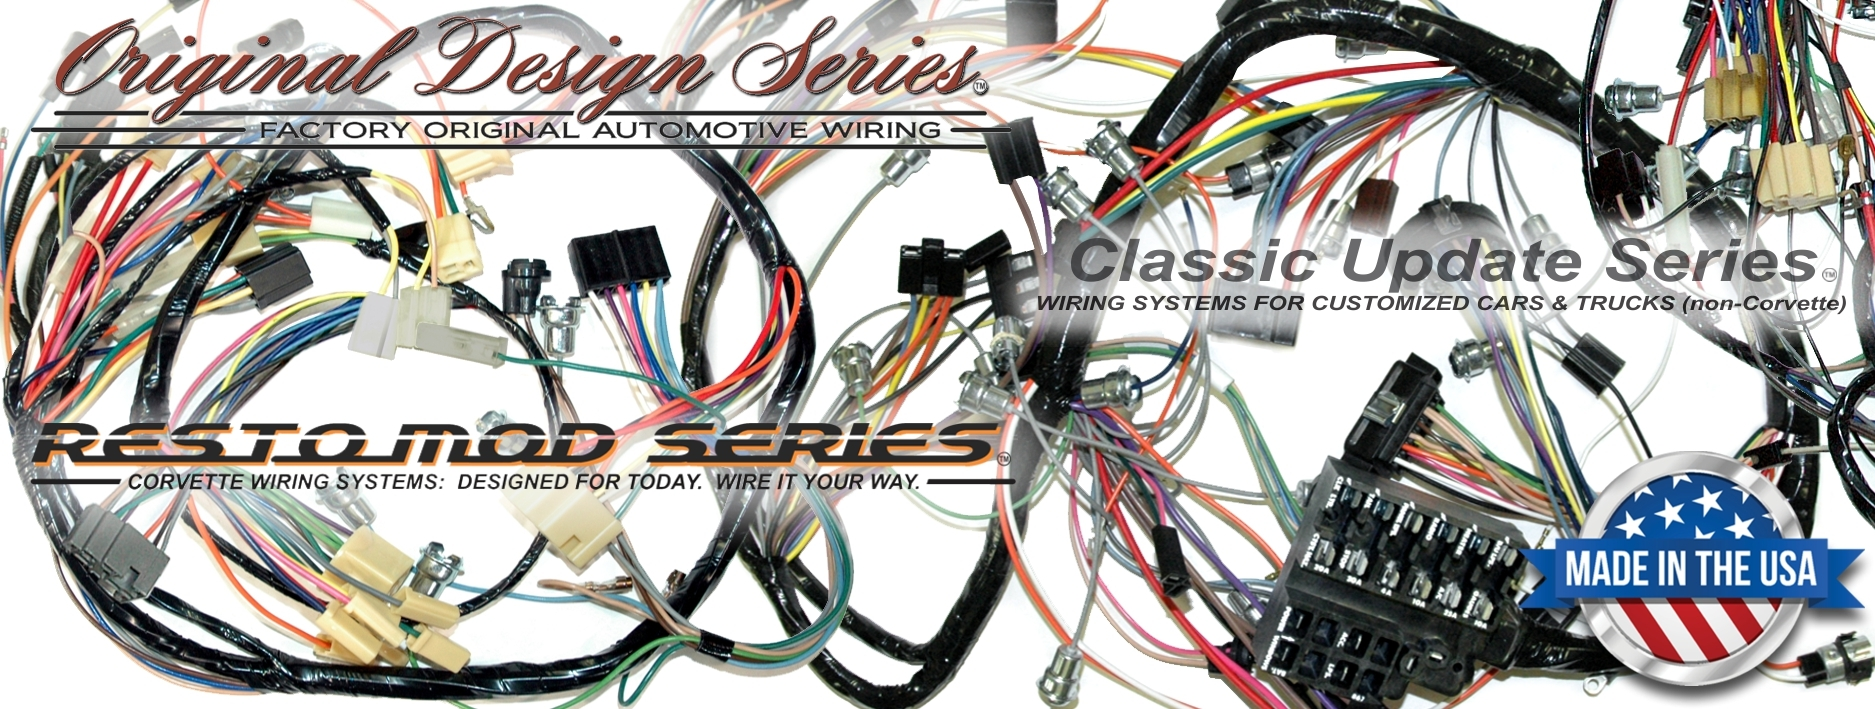 new header wiring_harnesses exact oem reproduction wiring harnesses and restomod wiring c3 corvette engine wiring harness at webbmarketing.co